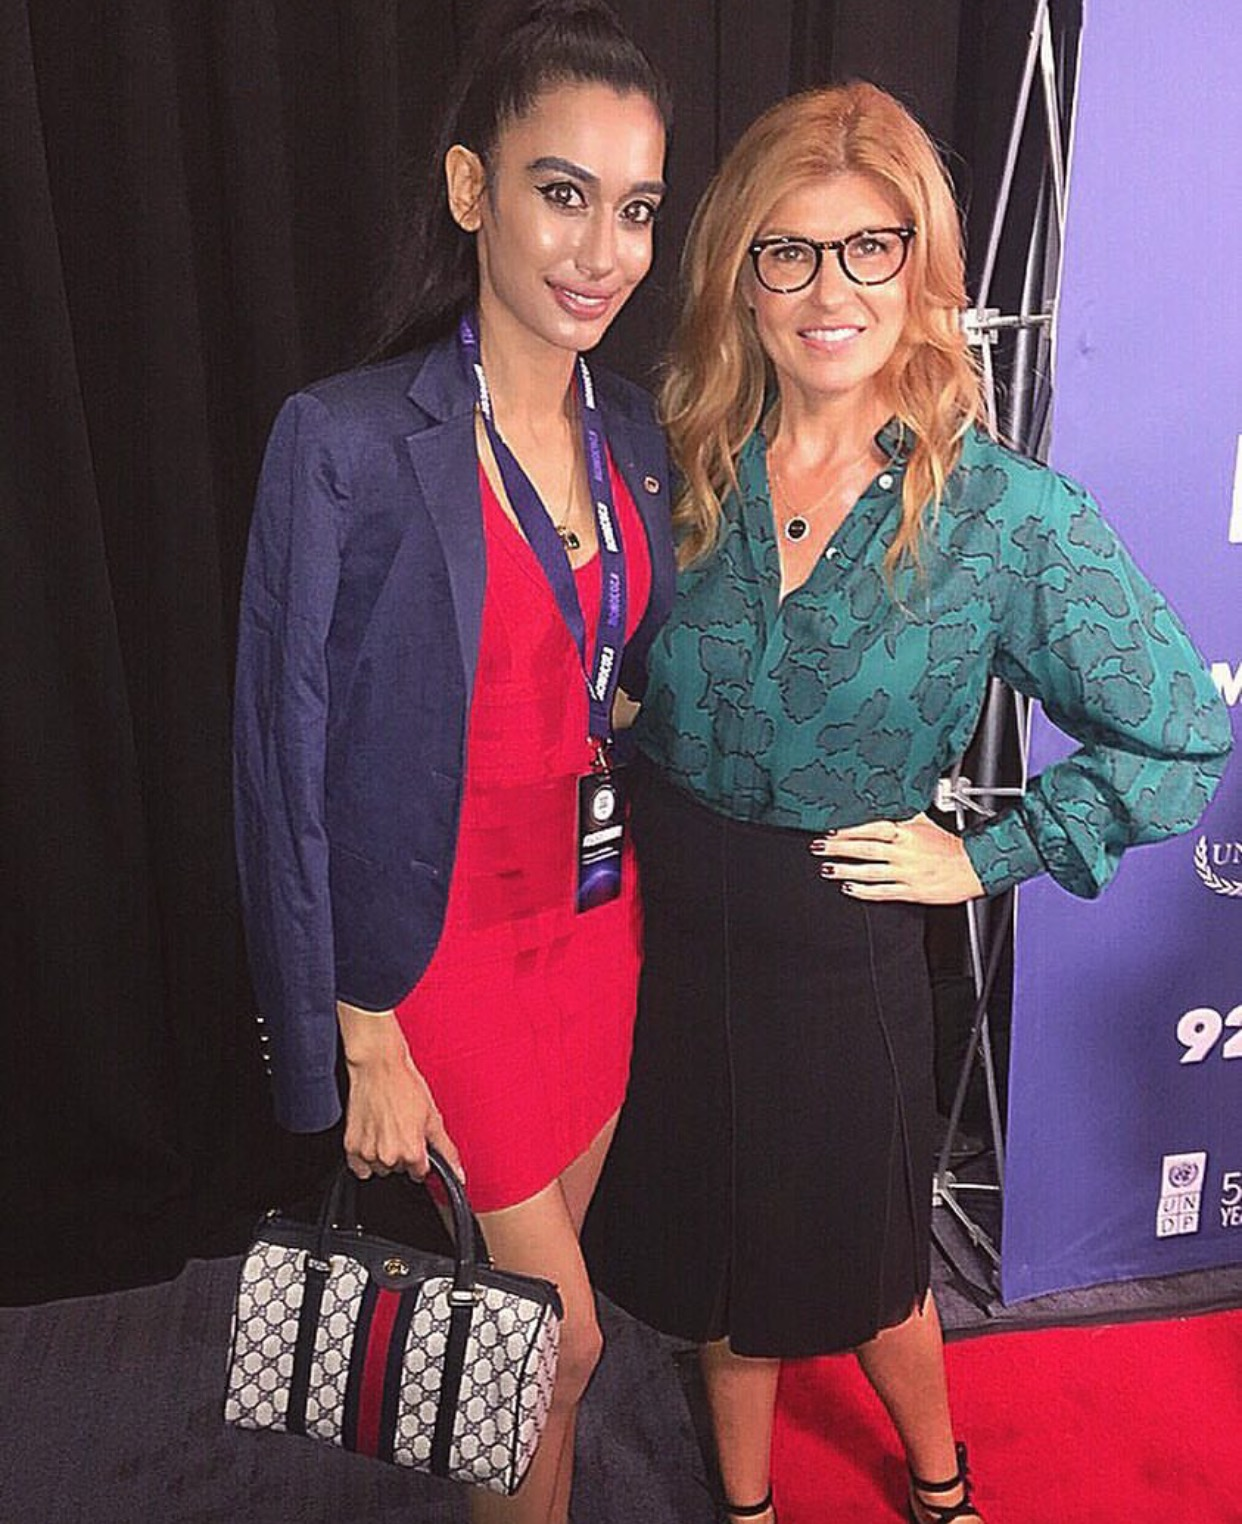 With the gorgeous and talented actress @conniebritton today at the #2030NOW #SocialGoodSummit as part of the United Nations General Assembly. THANK YOU CONNIE for the lovely discussion about women in the UN and how we can work together to empower women all over the world! 🌹